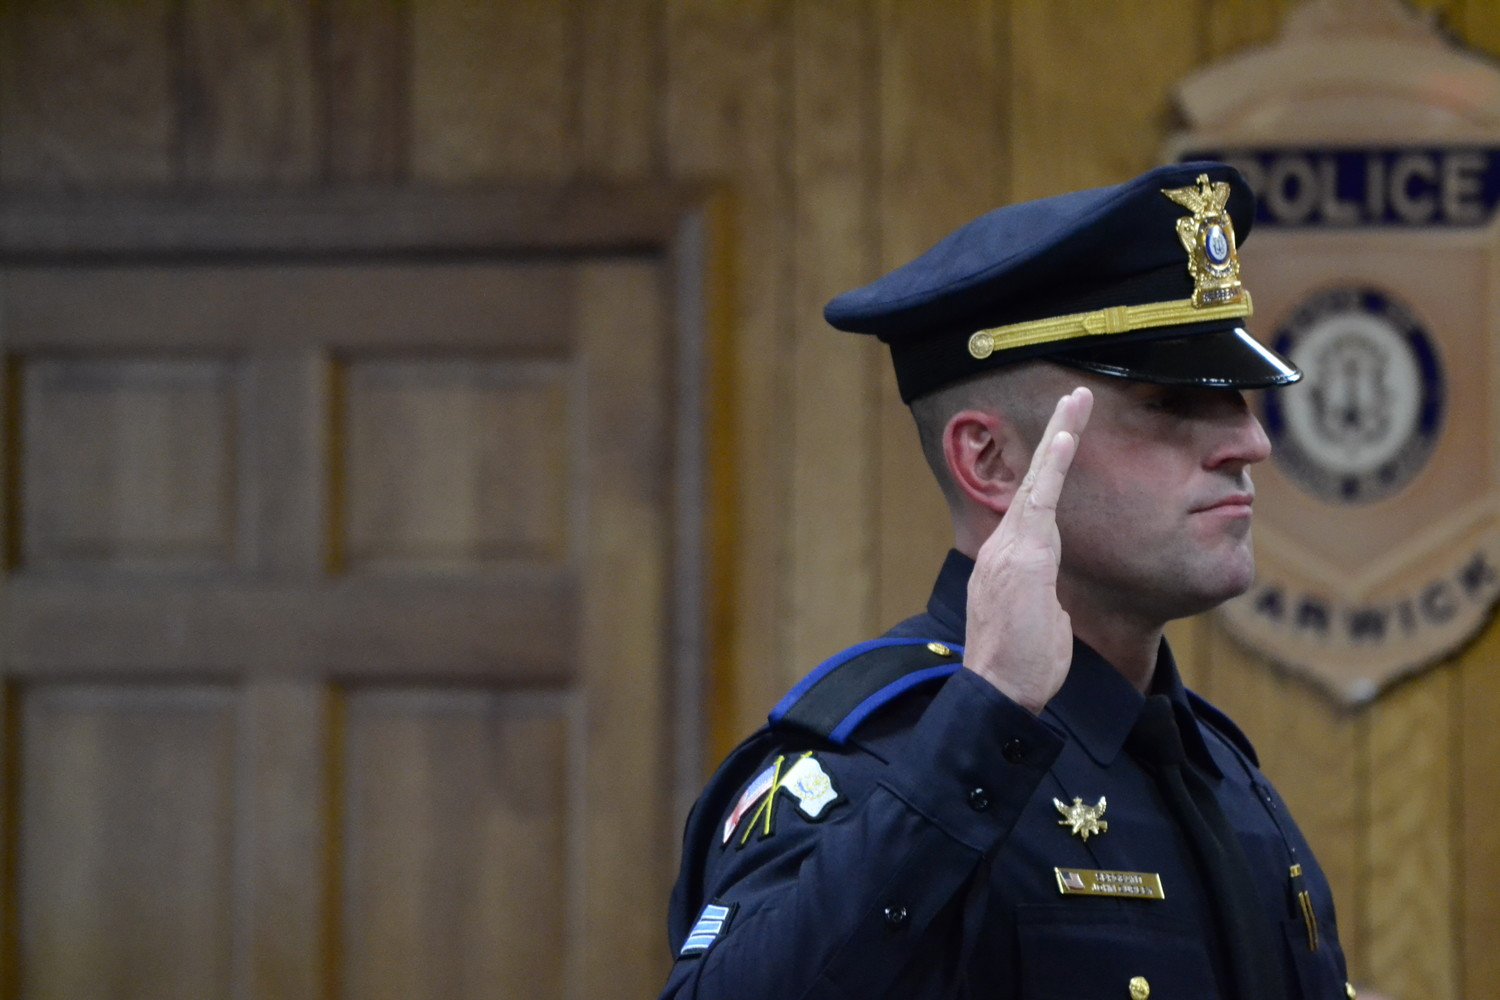 Justin Hartley Now >> Four new WPD officers sworn in, Curley promoted to sergeant | Warwick Beacon